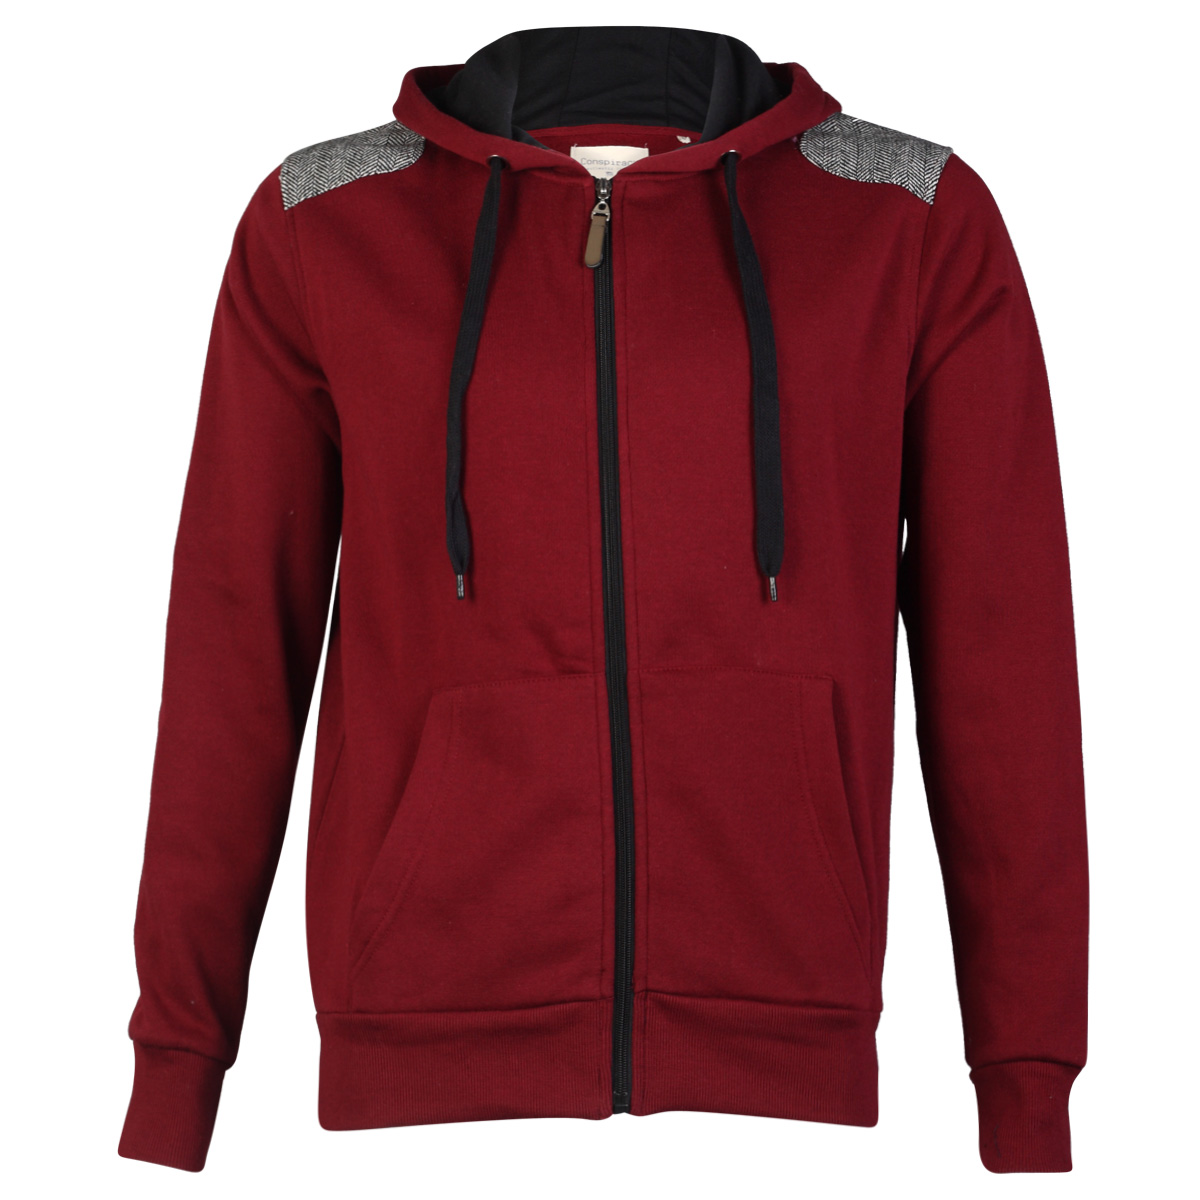 Designer Men's Hoodies Master that street style with Givenchy or opt for something fun and vibrant from Kenzo and Fendi. Whether you're looking fro something offbeat or classic, you'll find many a style from an eclectic variety of global brands and the most talked about new designers in our men's edit.